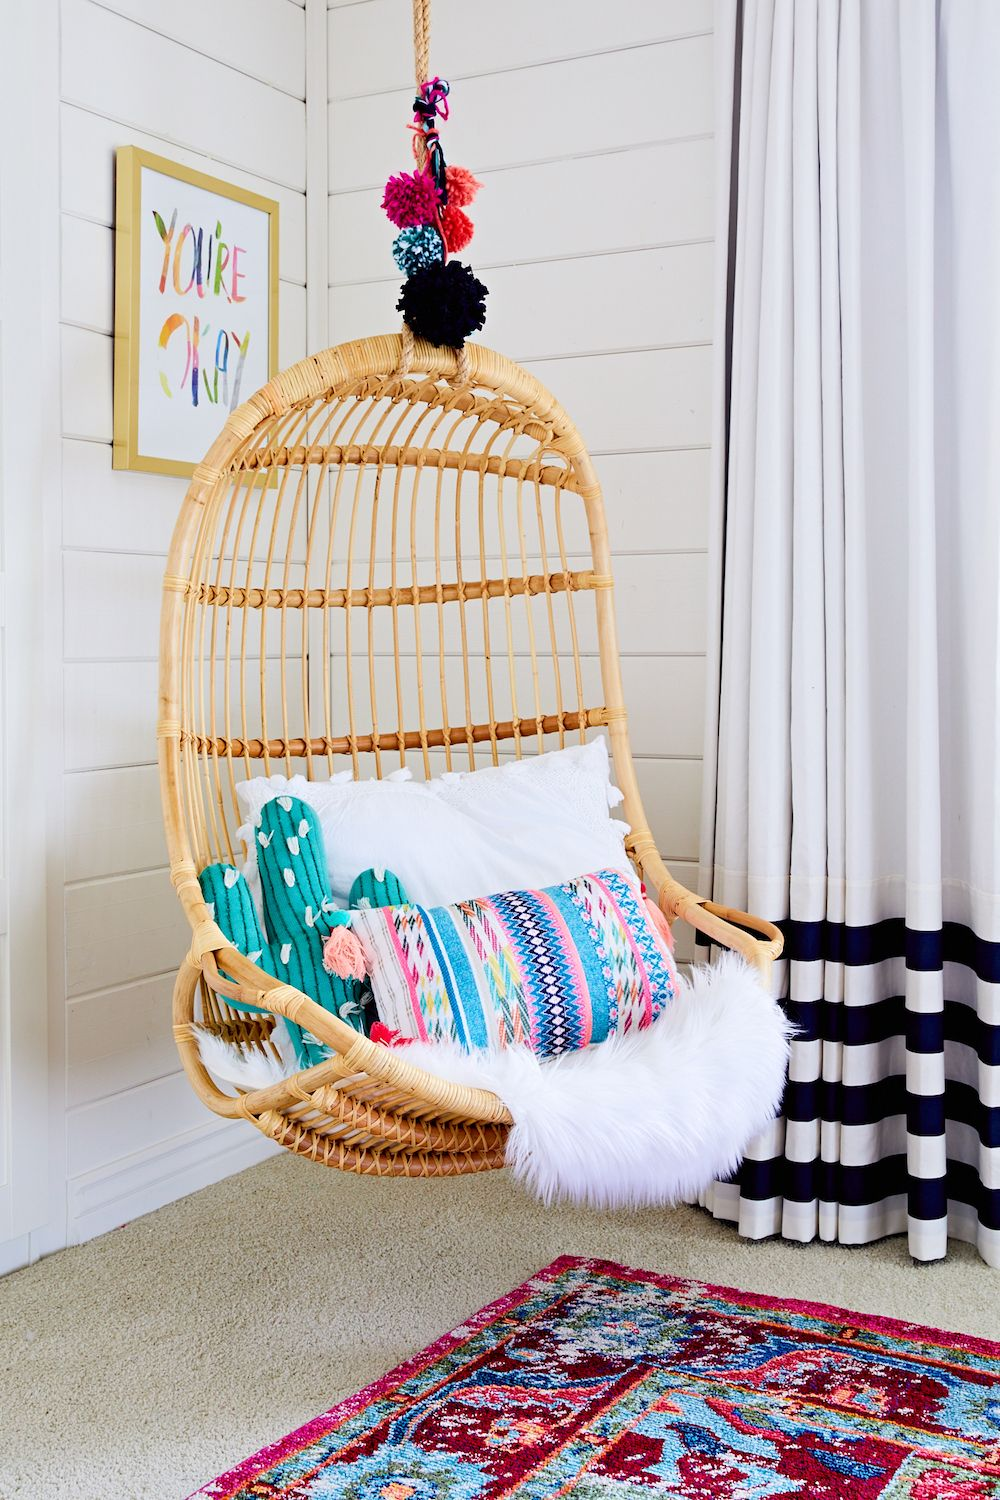 Trendspotting Hanging Chairs Are Swinging Into Kids Design Project Nursery Small Kids Room Hanging Chair Kid Room Decor